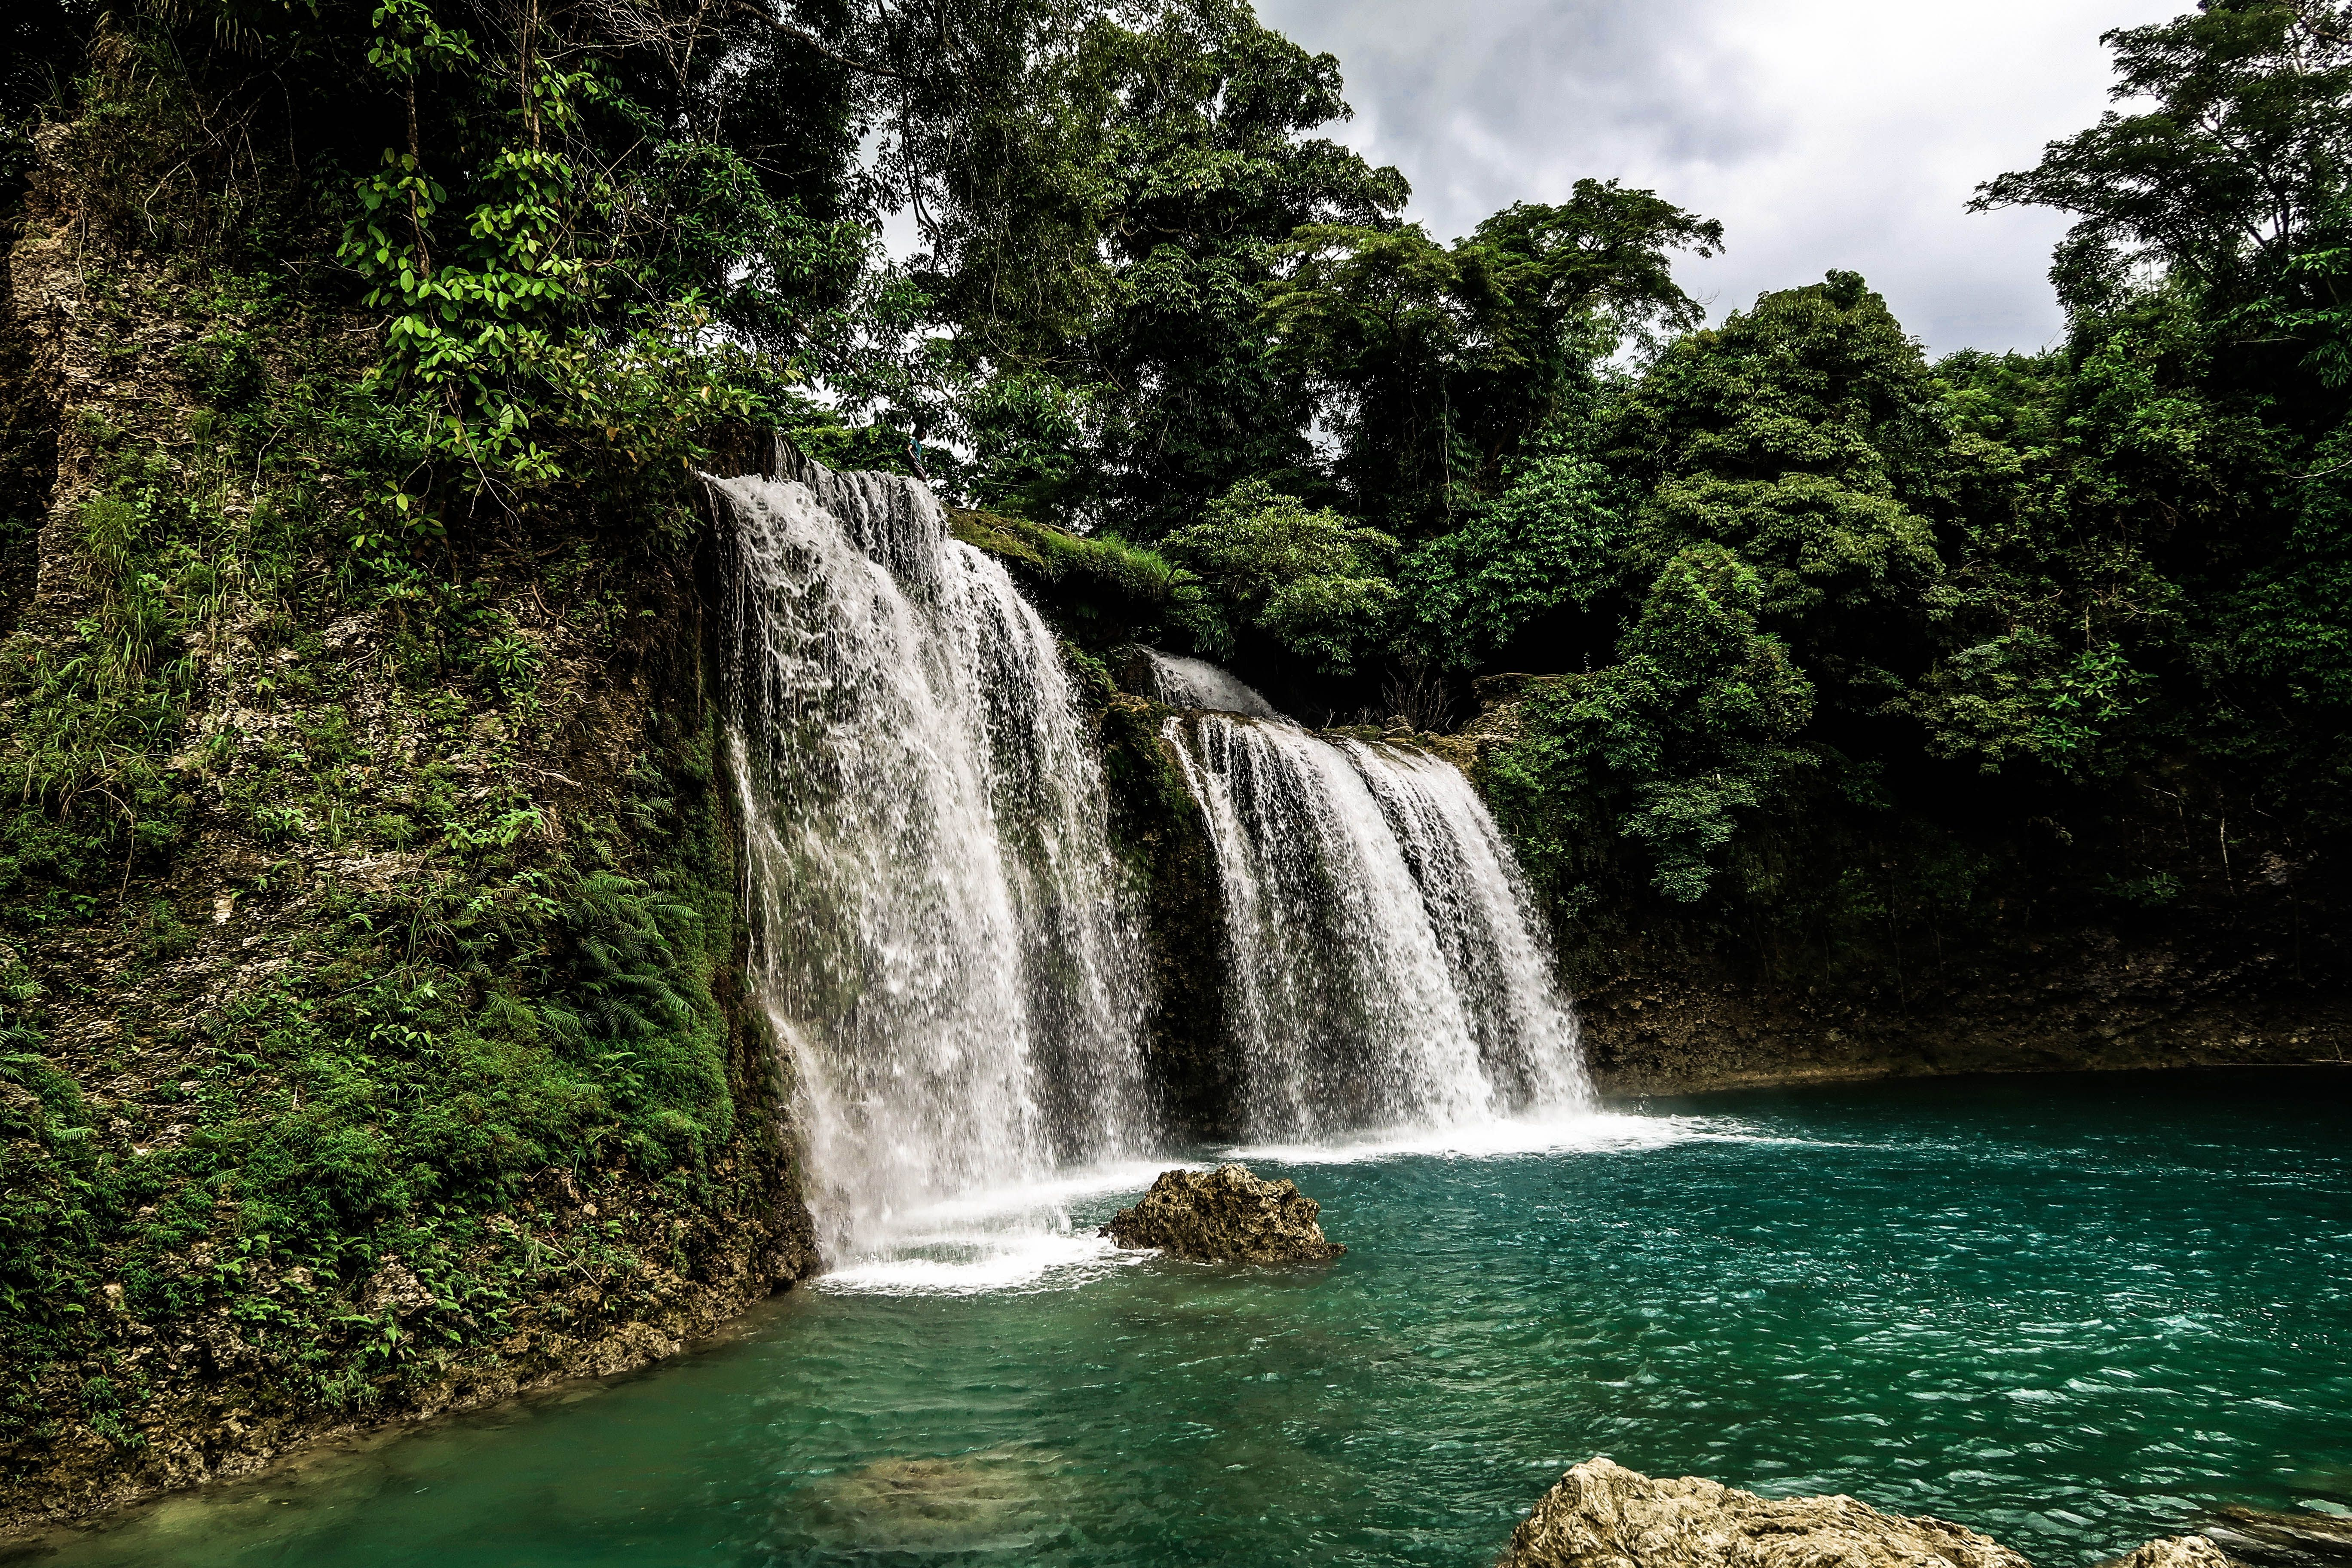 The Bolinao Falls are three popular waterfalls in the